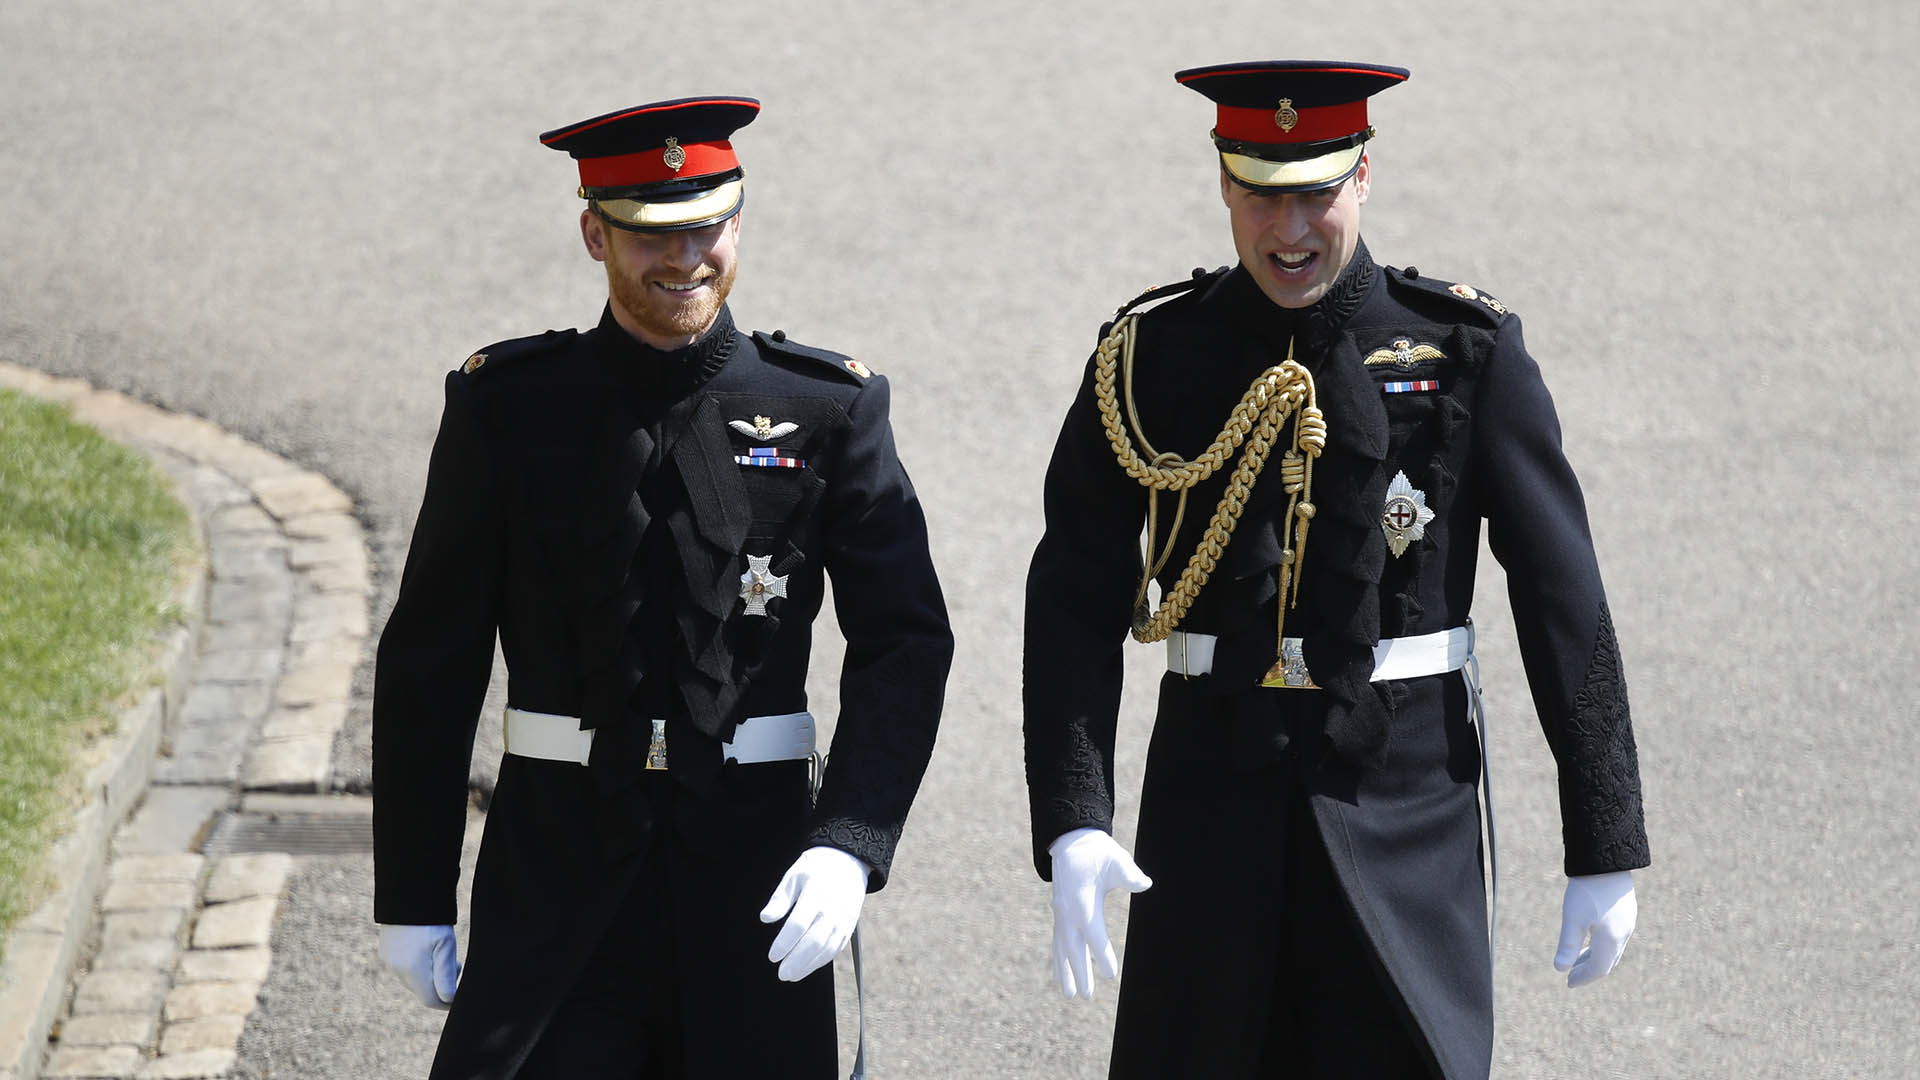 Harry y William, con sus uniformes militares de gala a la llegada a Windsor (AFP)